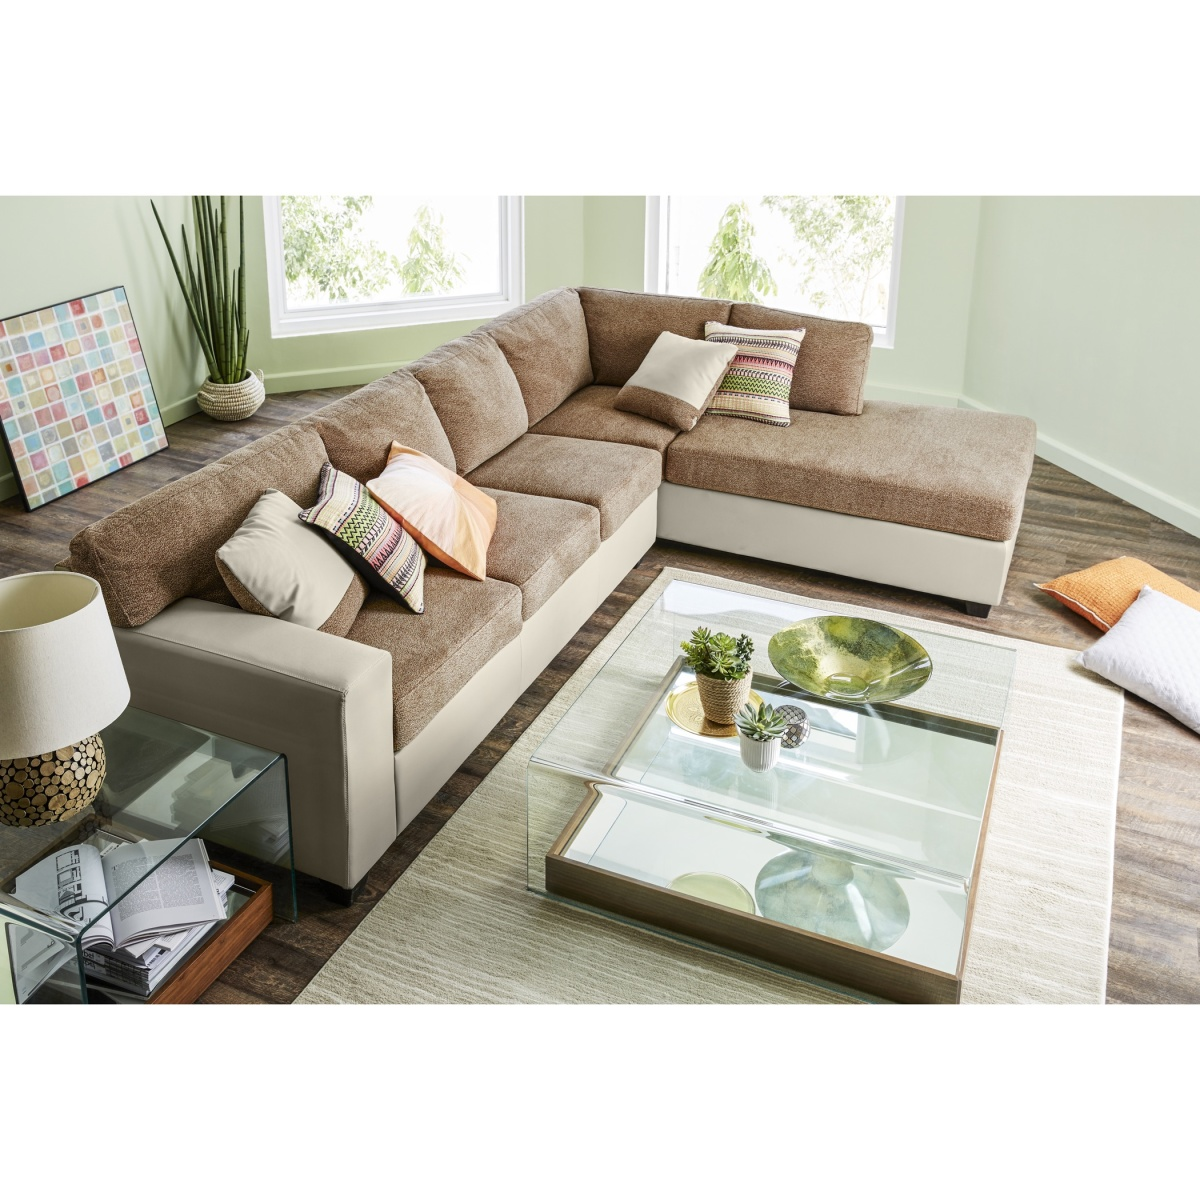 Jumbo 4-Seater Right Corner Sofa